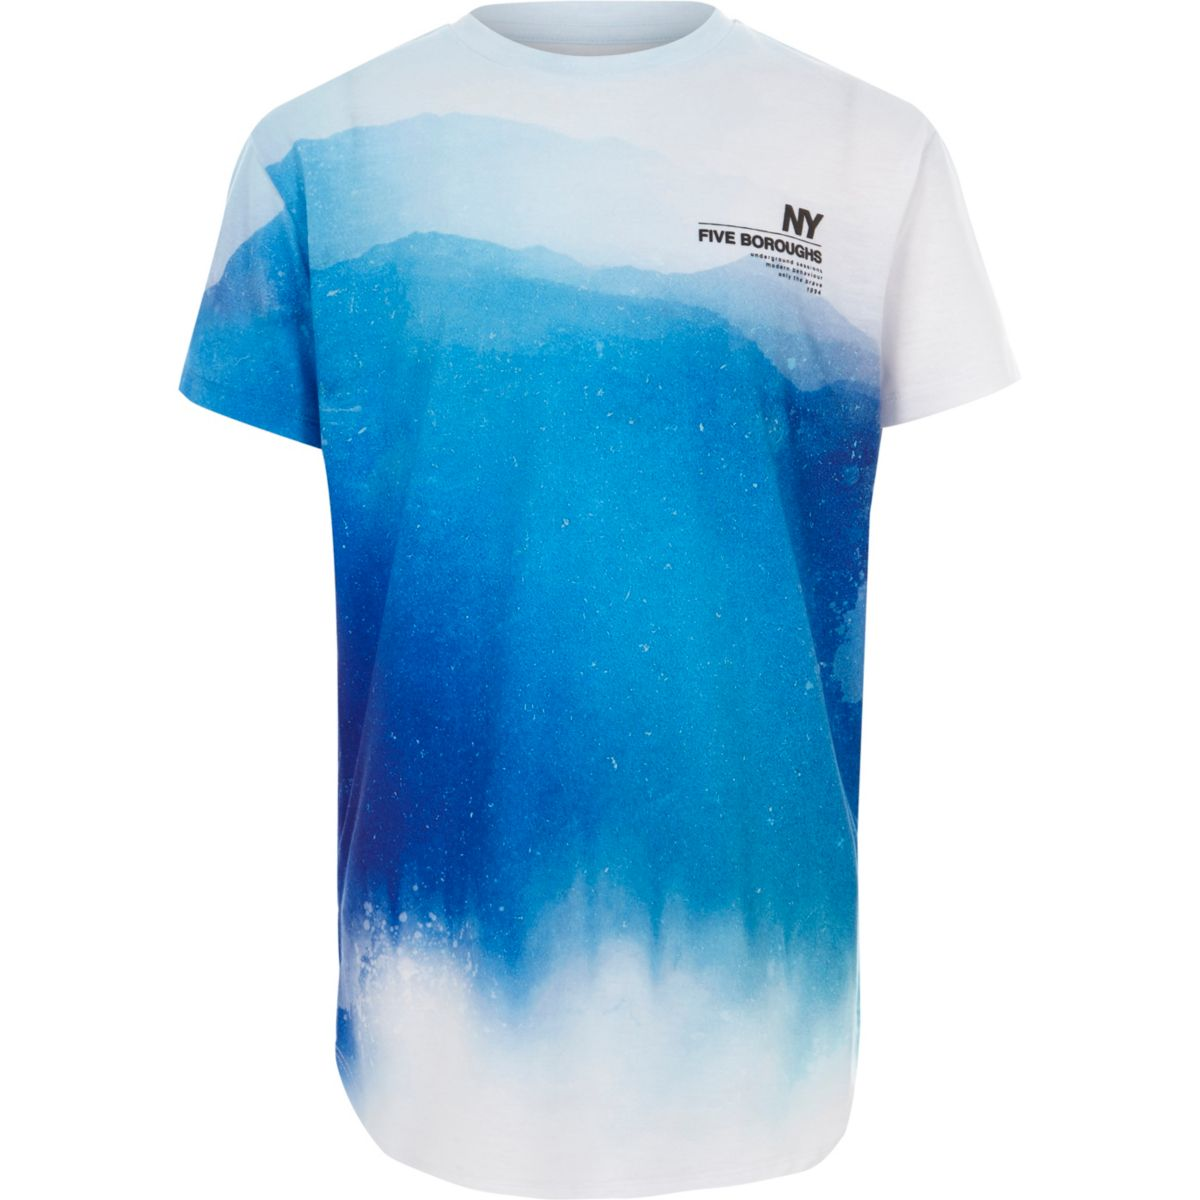 Boys blue fade 'NY' curved hem T-shirt